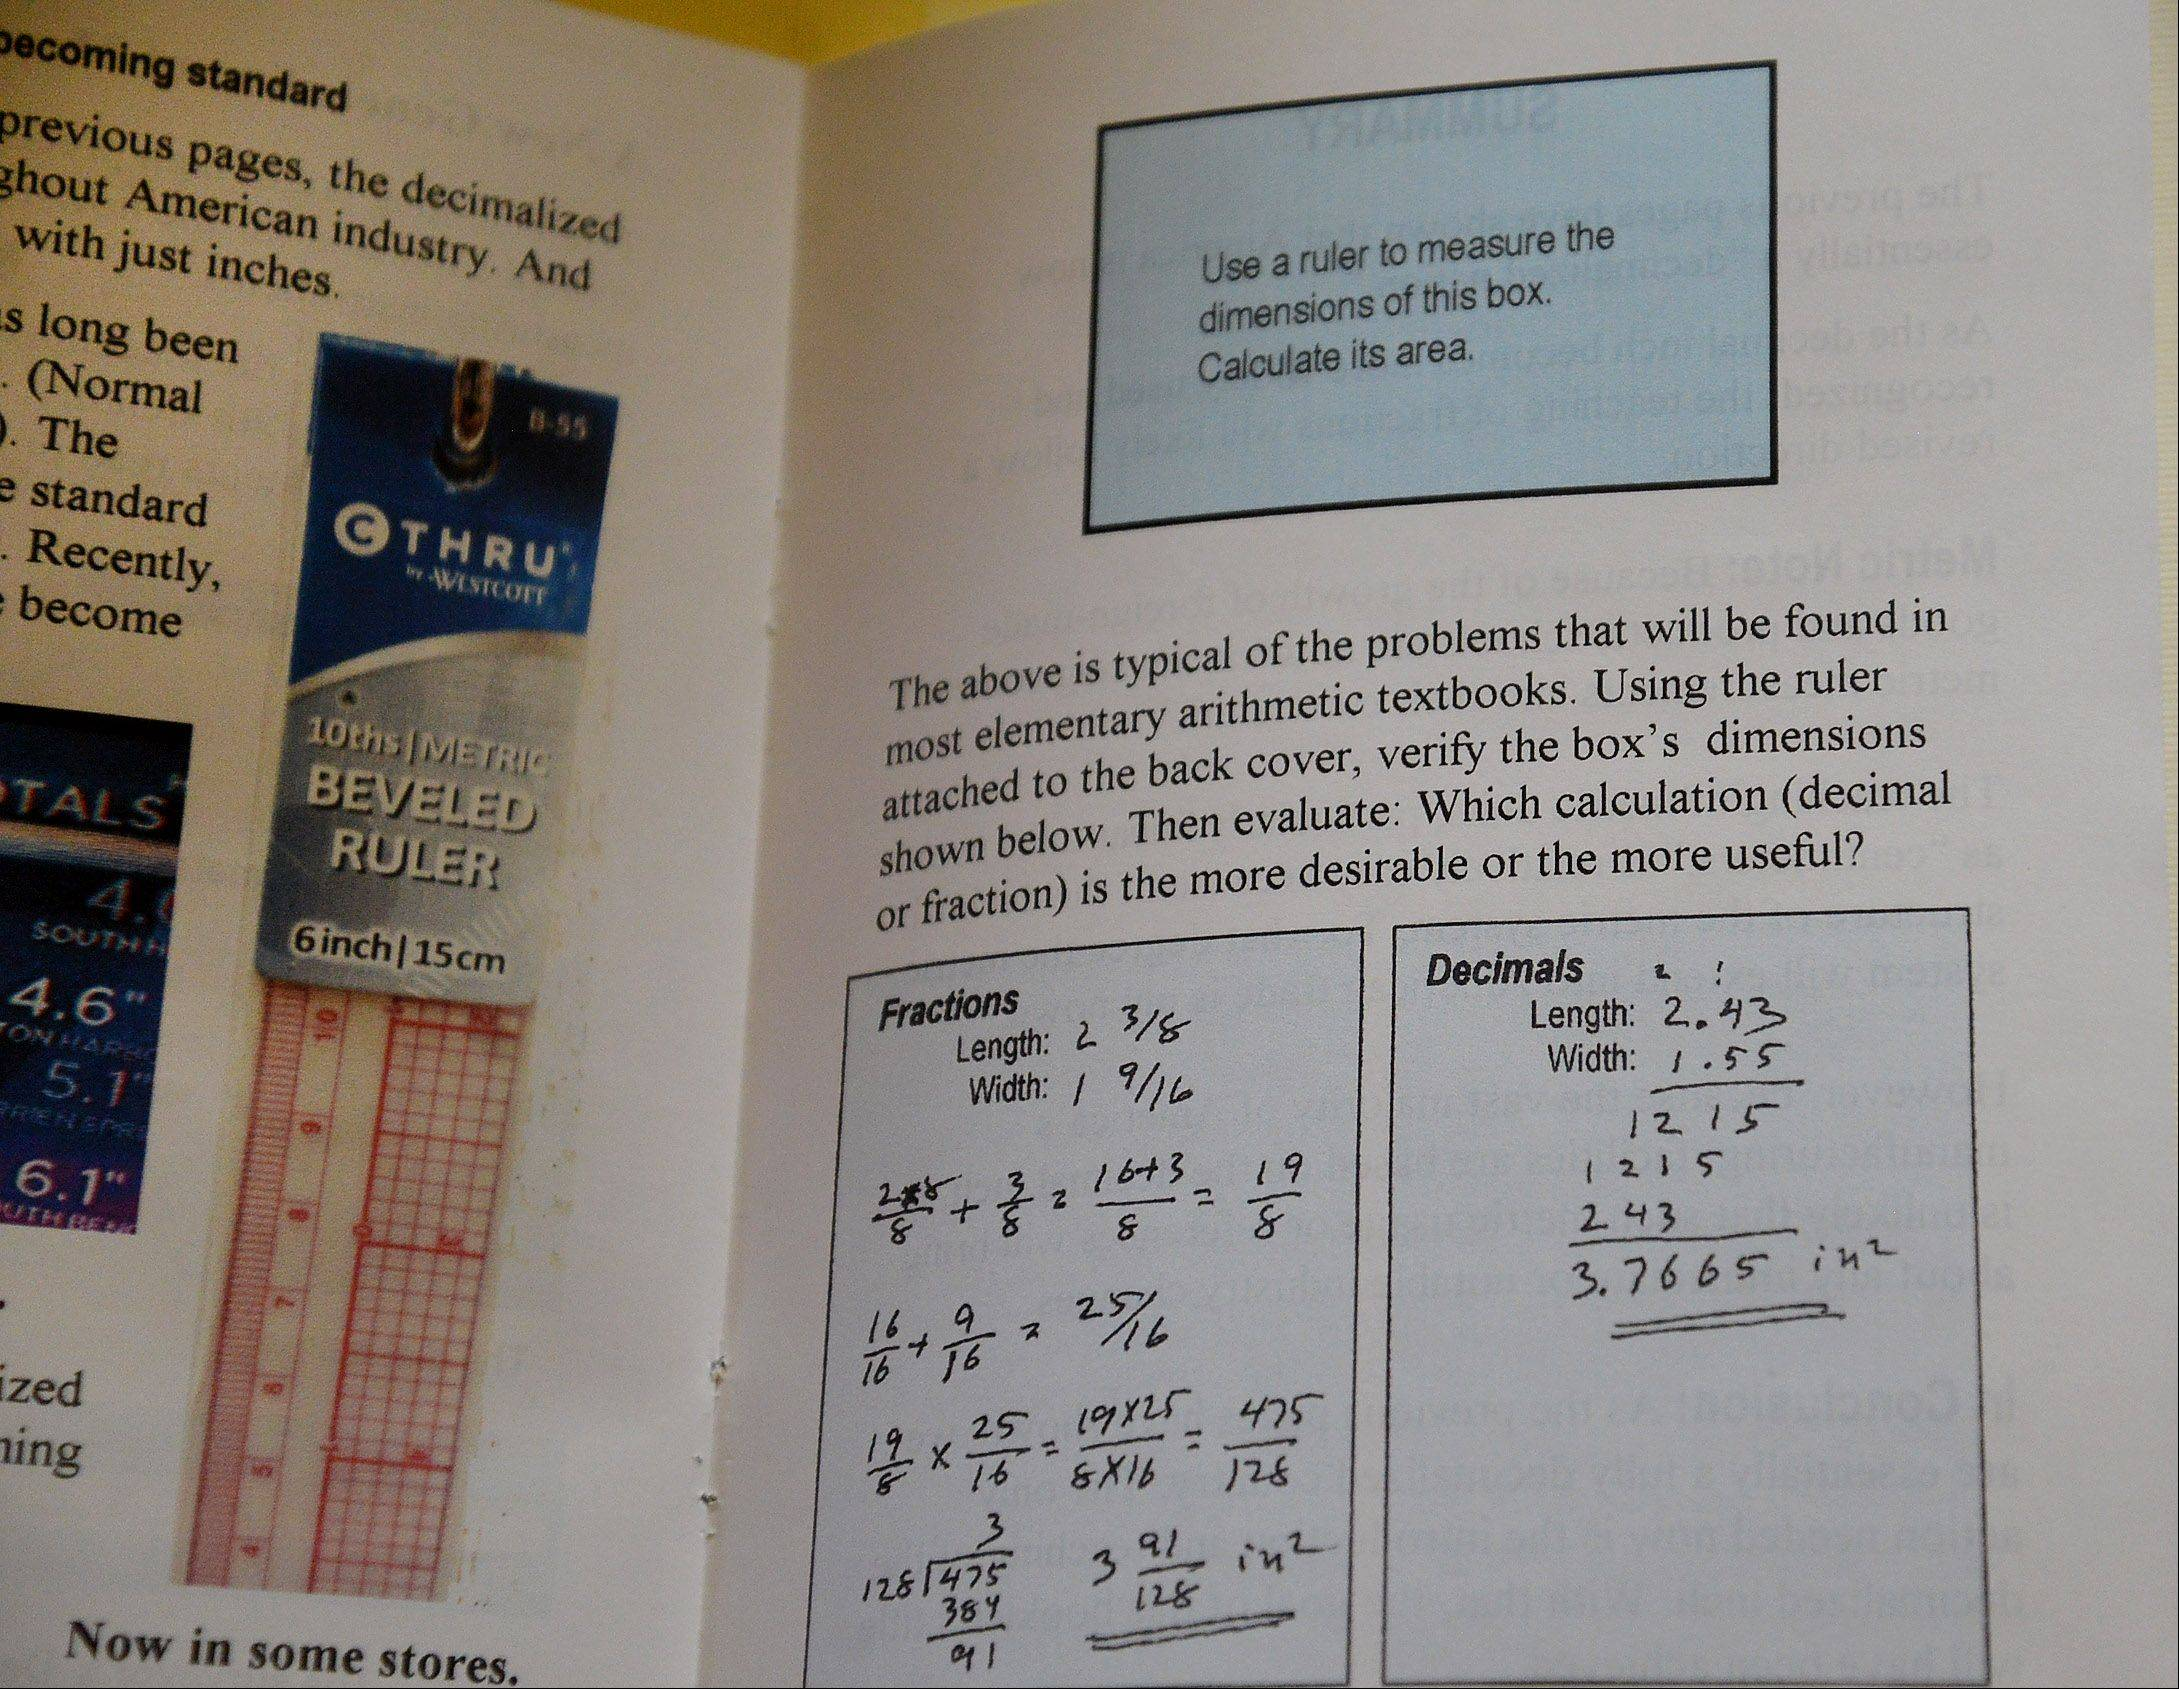 Fractions are confusing, and confusion leads to mistakes, says Ed Evenson, an 85-year-old retired engineer who wrote this booklet showing how working with decimals is easier than calculating with fractions.